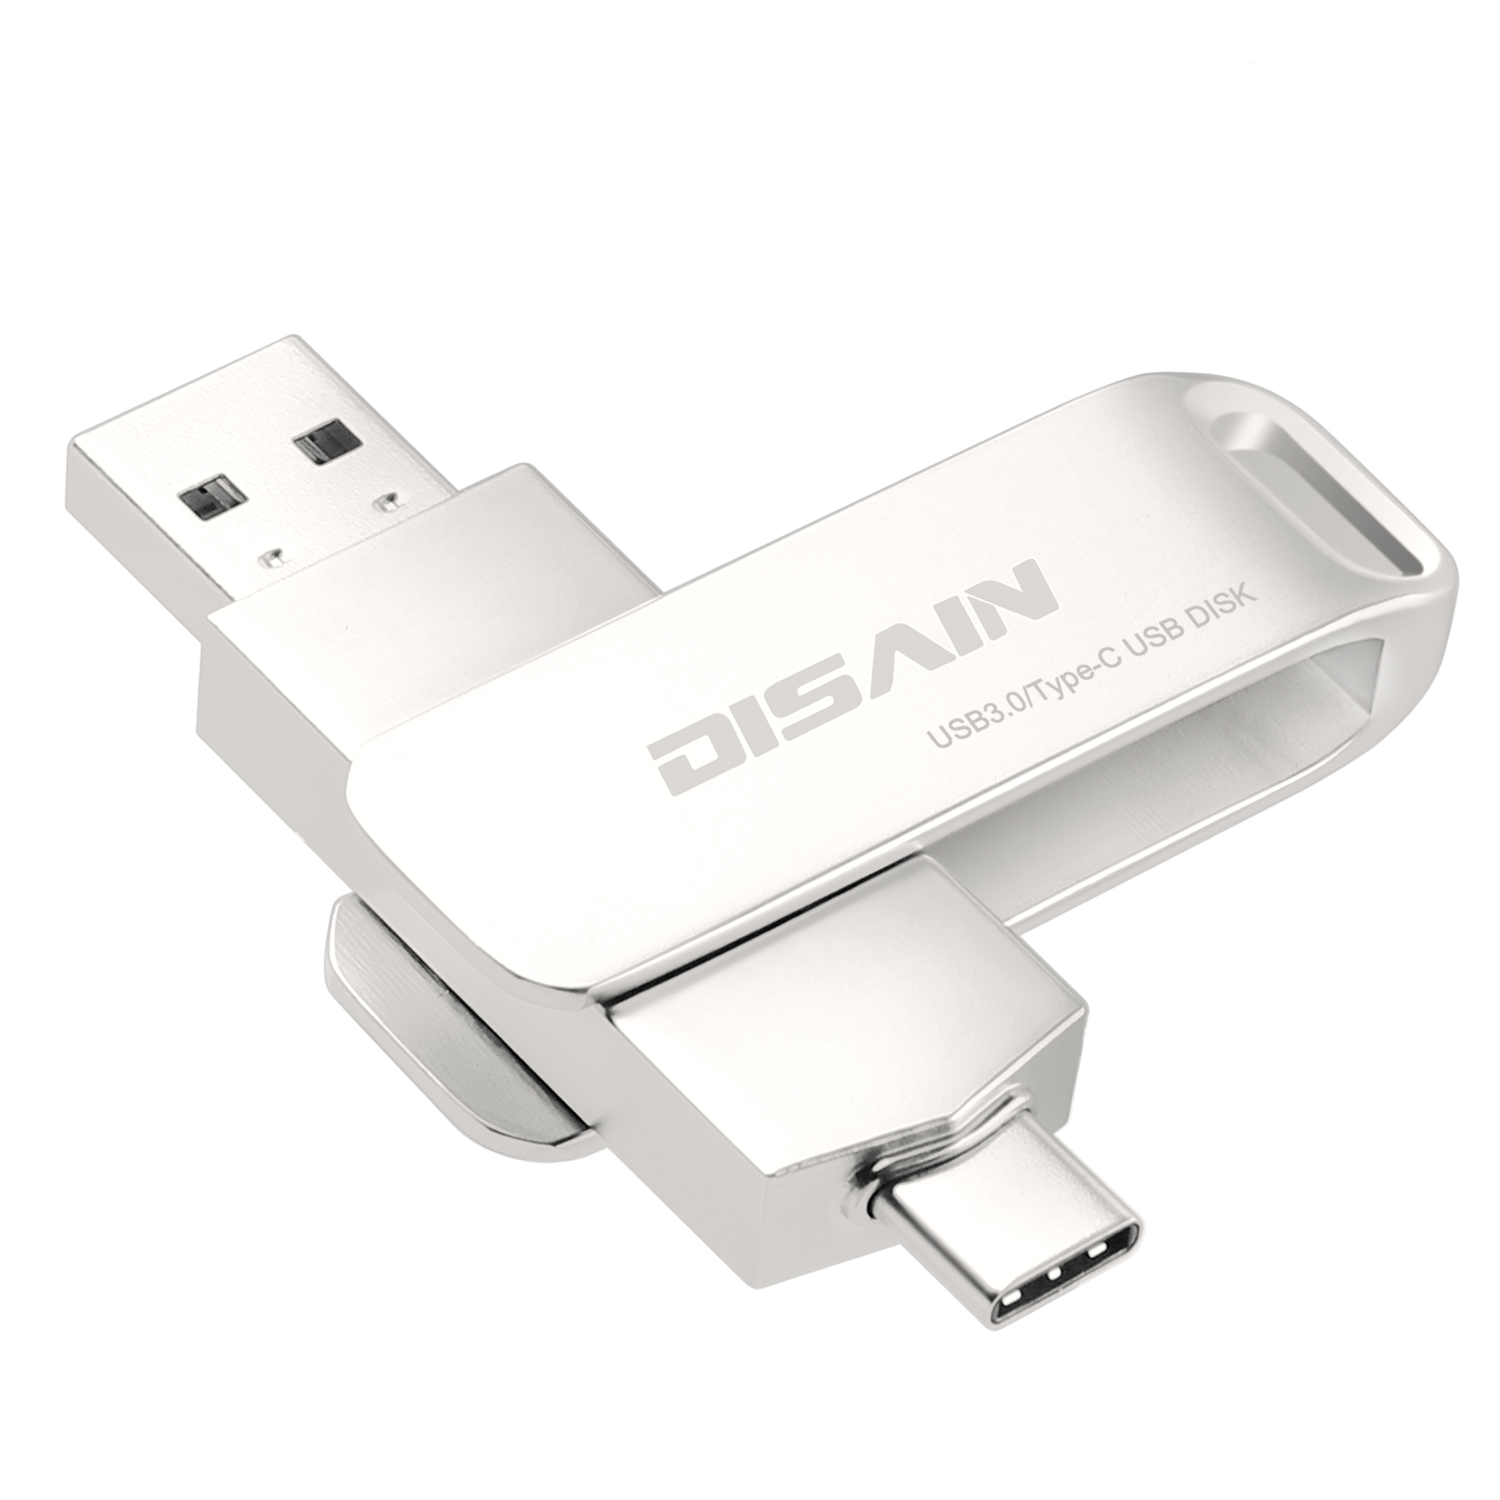 DISAIN USB C Dual Flash Drive, USB3.0/3.1 Type C High Speed Thumb Drive Memory Stick Compatible with Samsung Galaxy, Android image